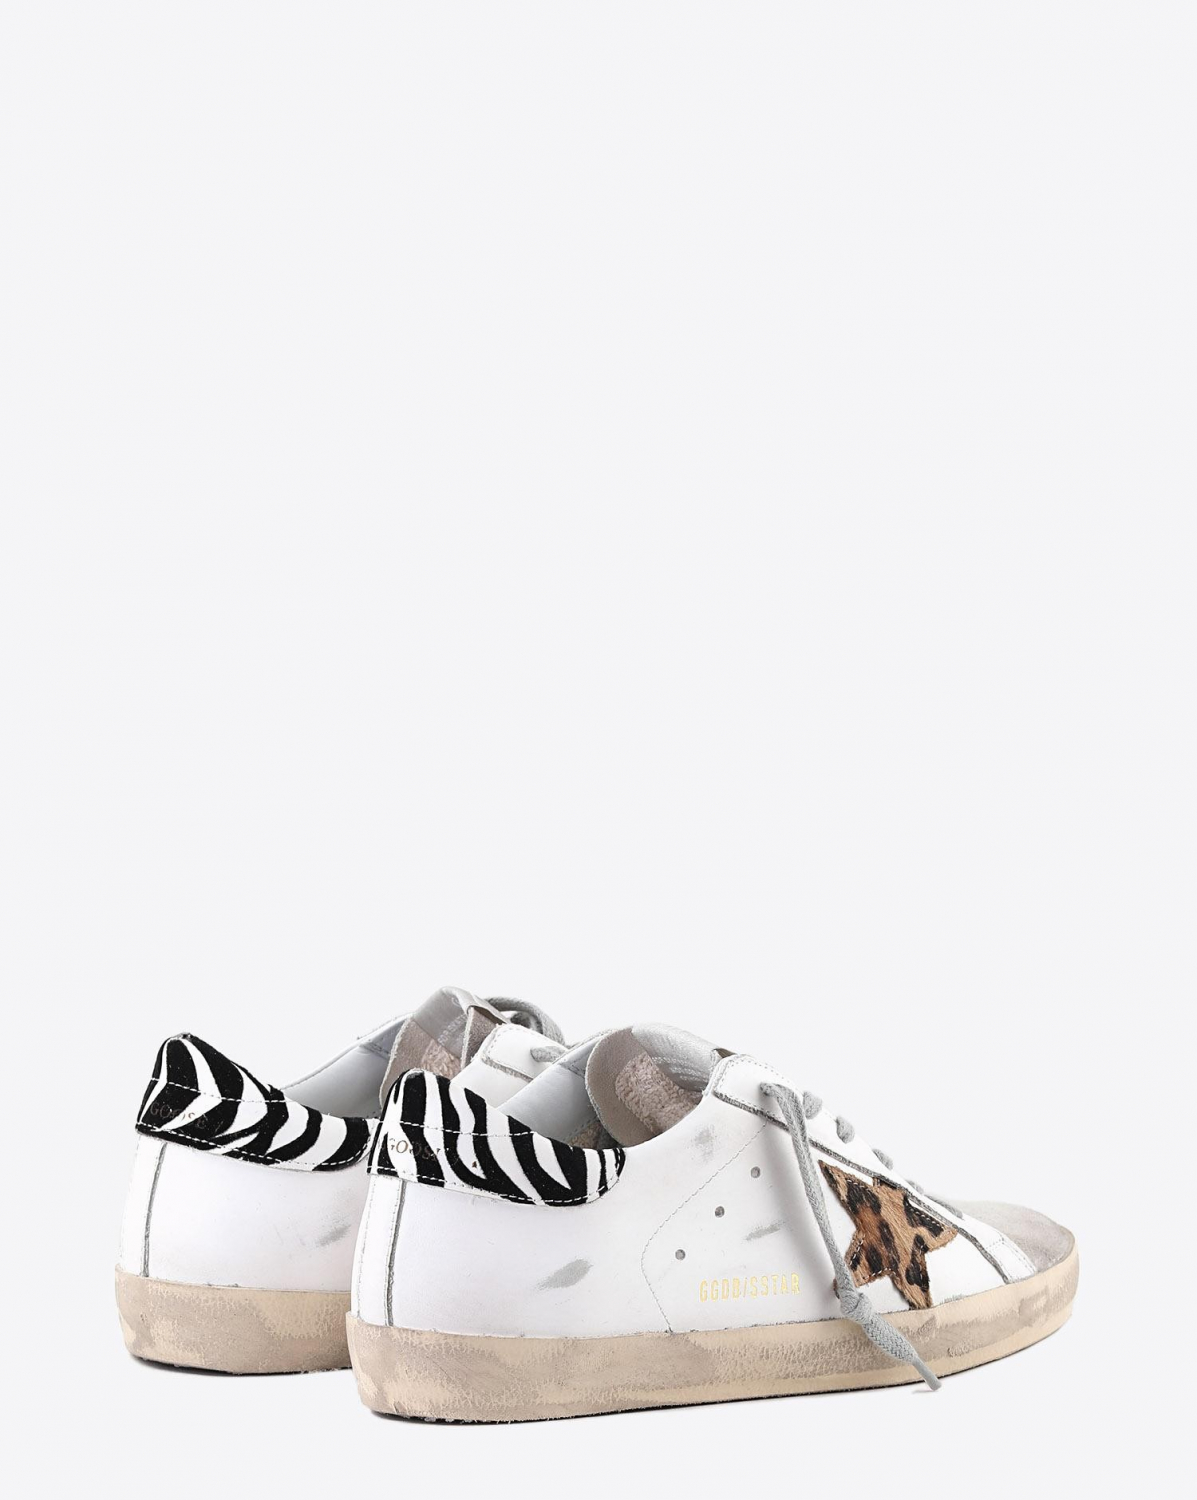 Golden Goose Woman Pré-Collection Sneakers Superstar - White Leather - Pony Leo Star - Zigger Details